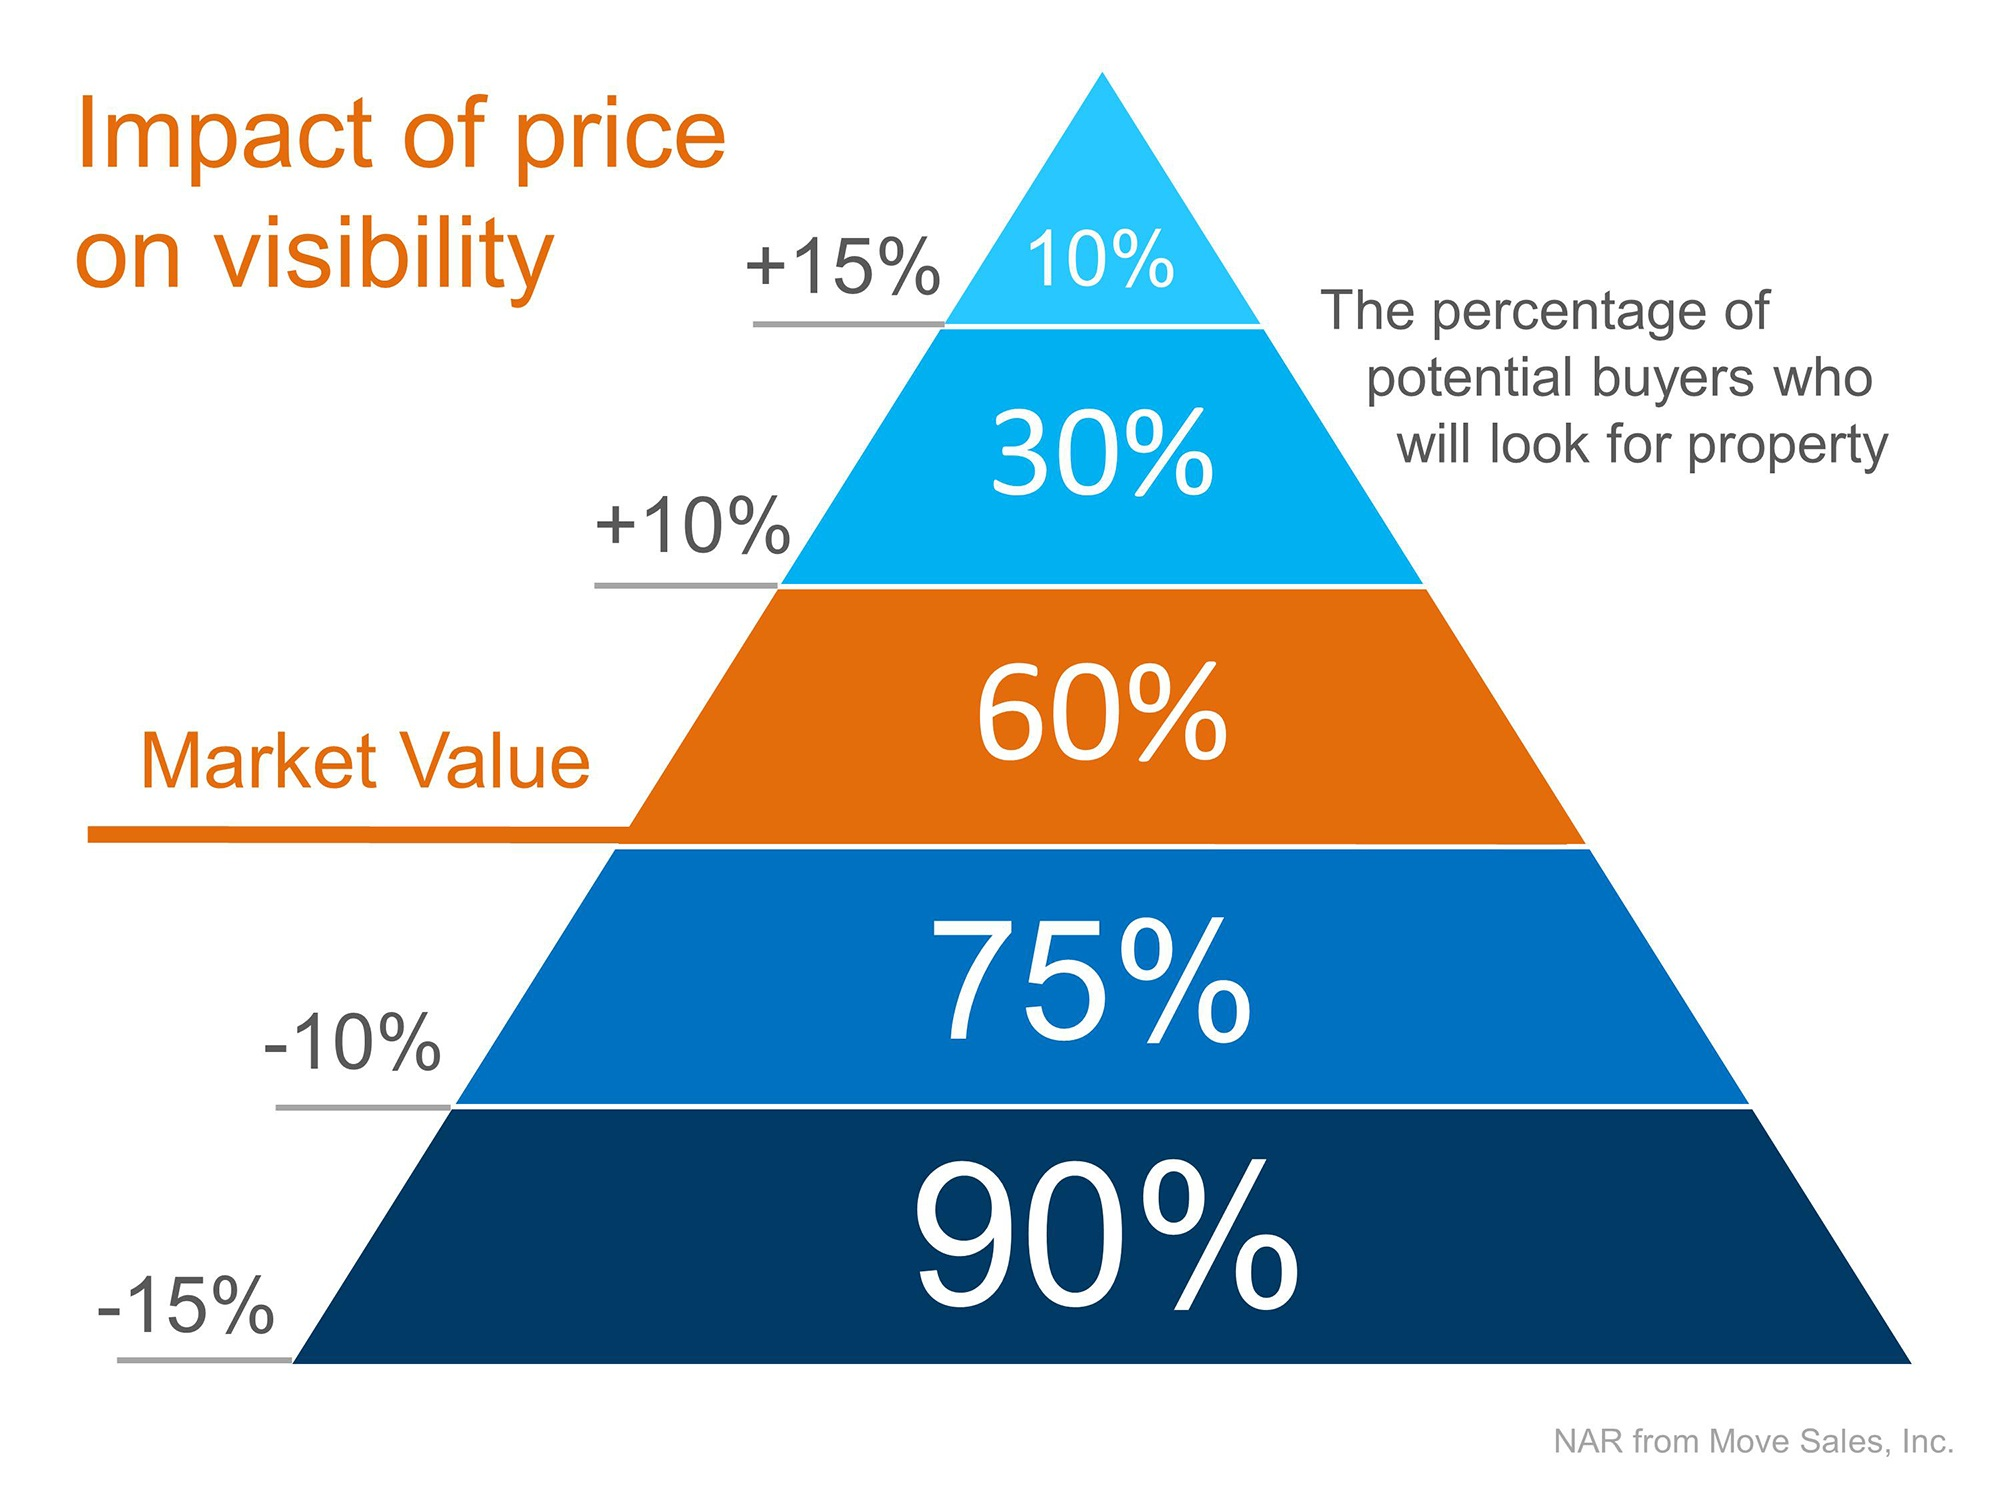 Impact of Price on Viability Harford County, MD